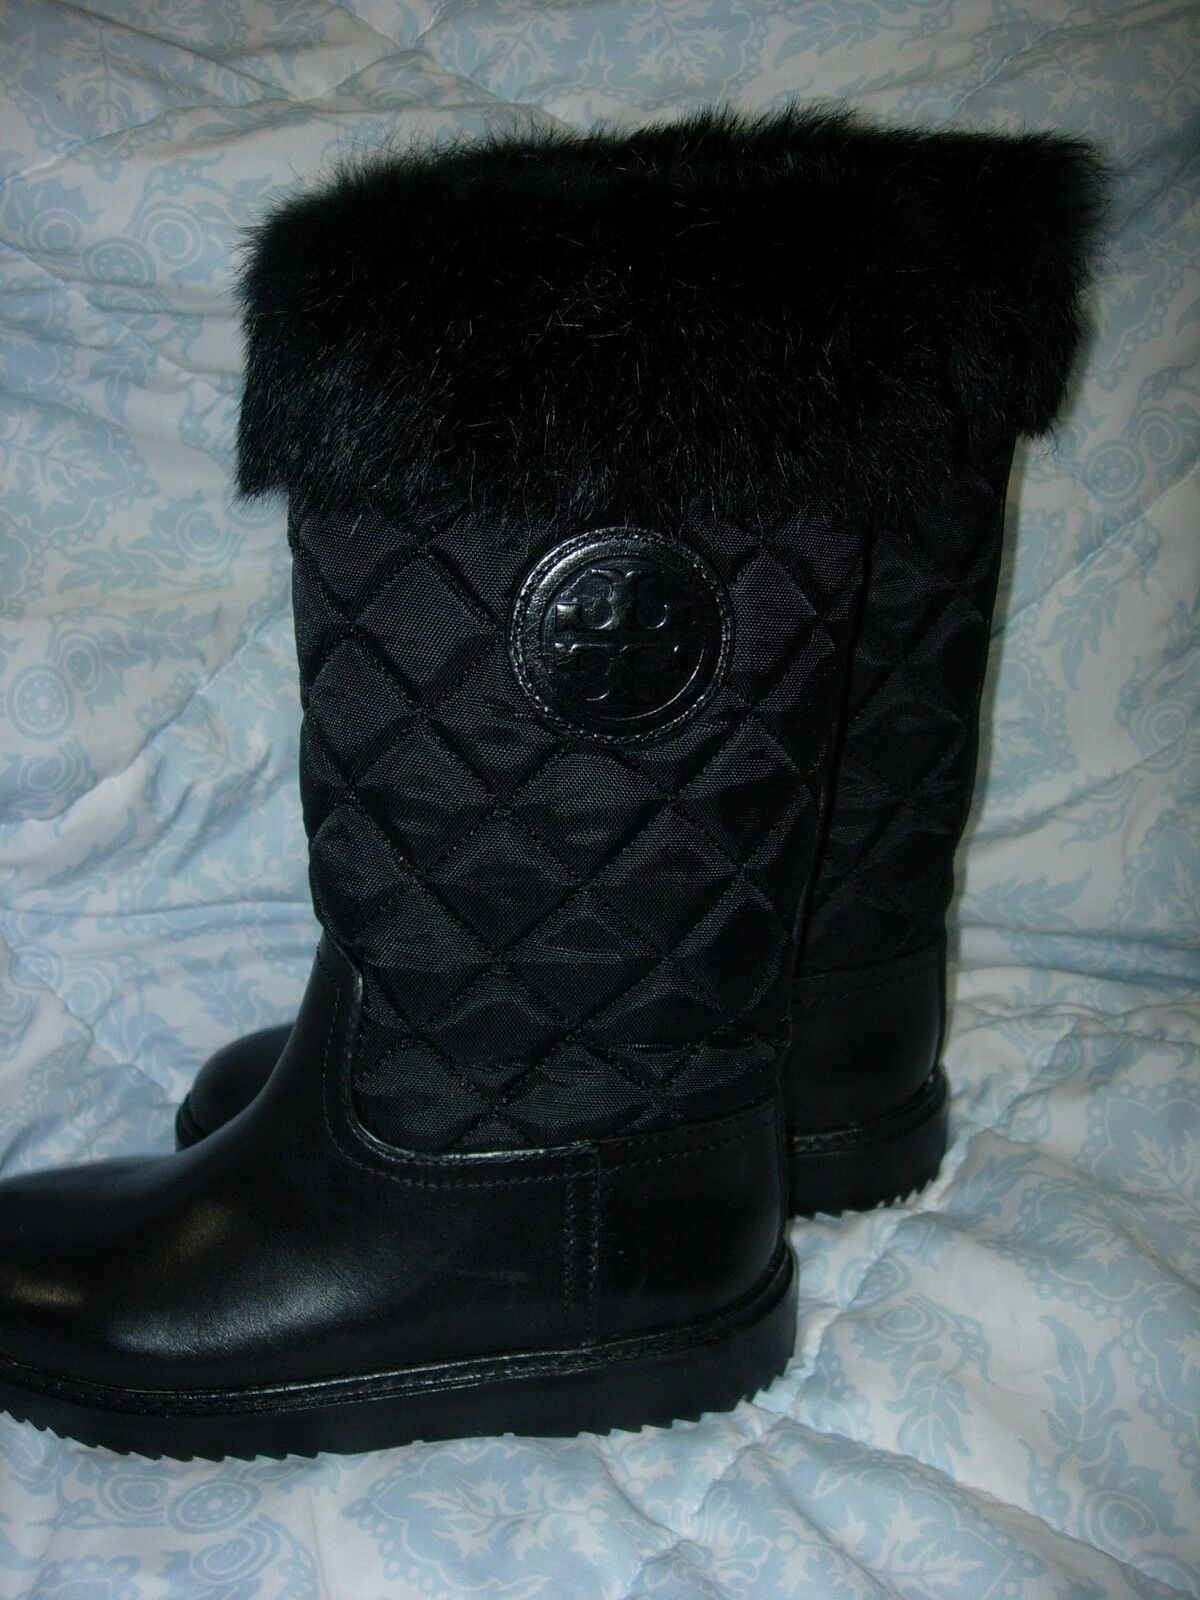 Tory Burch Joey Women US 5 Black Winter Boot Blemish 1044 New with Tags